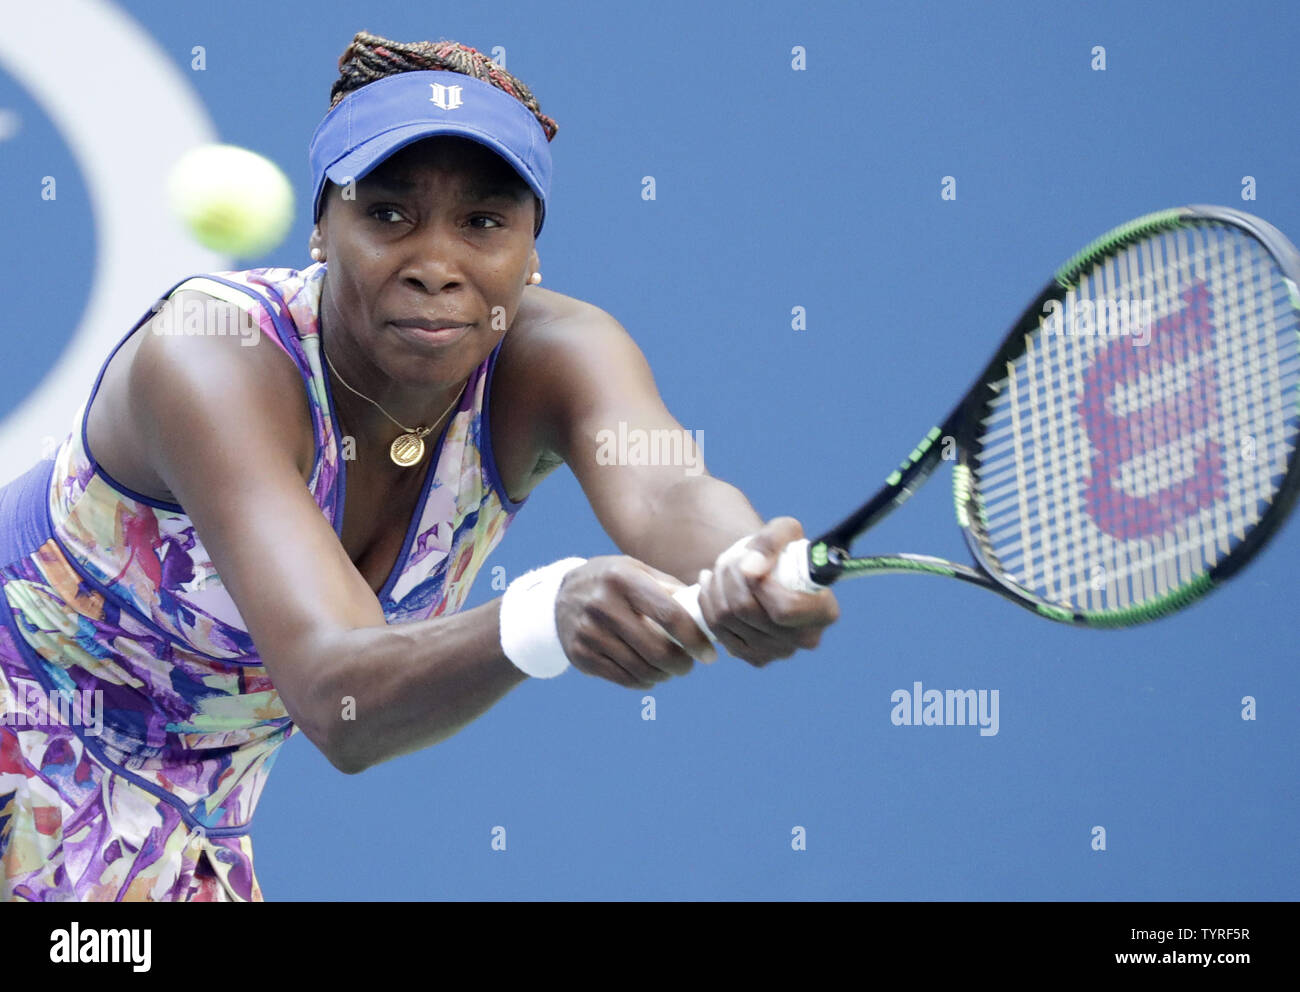 Venus Williams of the United States hits a backhand to Kateryna Kozlova of the Ukraine in their first round match at the 2016 US Open Tennis Championships at the USTA Billie Jean King National Tennis Center in New York City on August 30, 2016.      Photo by John Angelillo/UPI - Stock Image